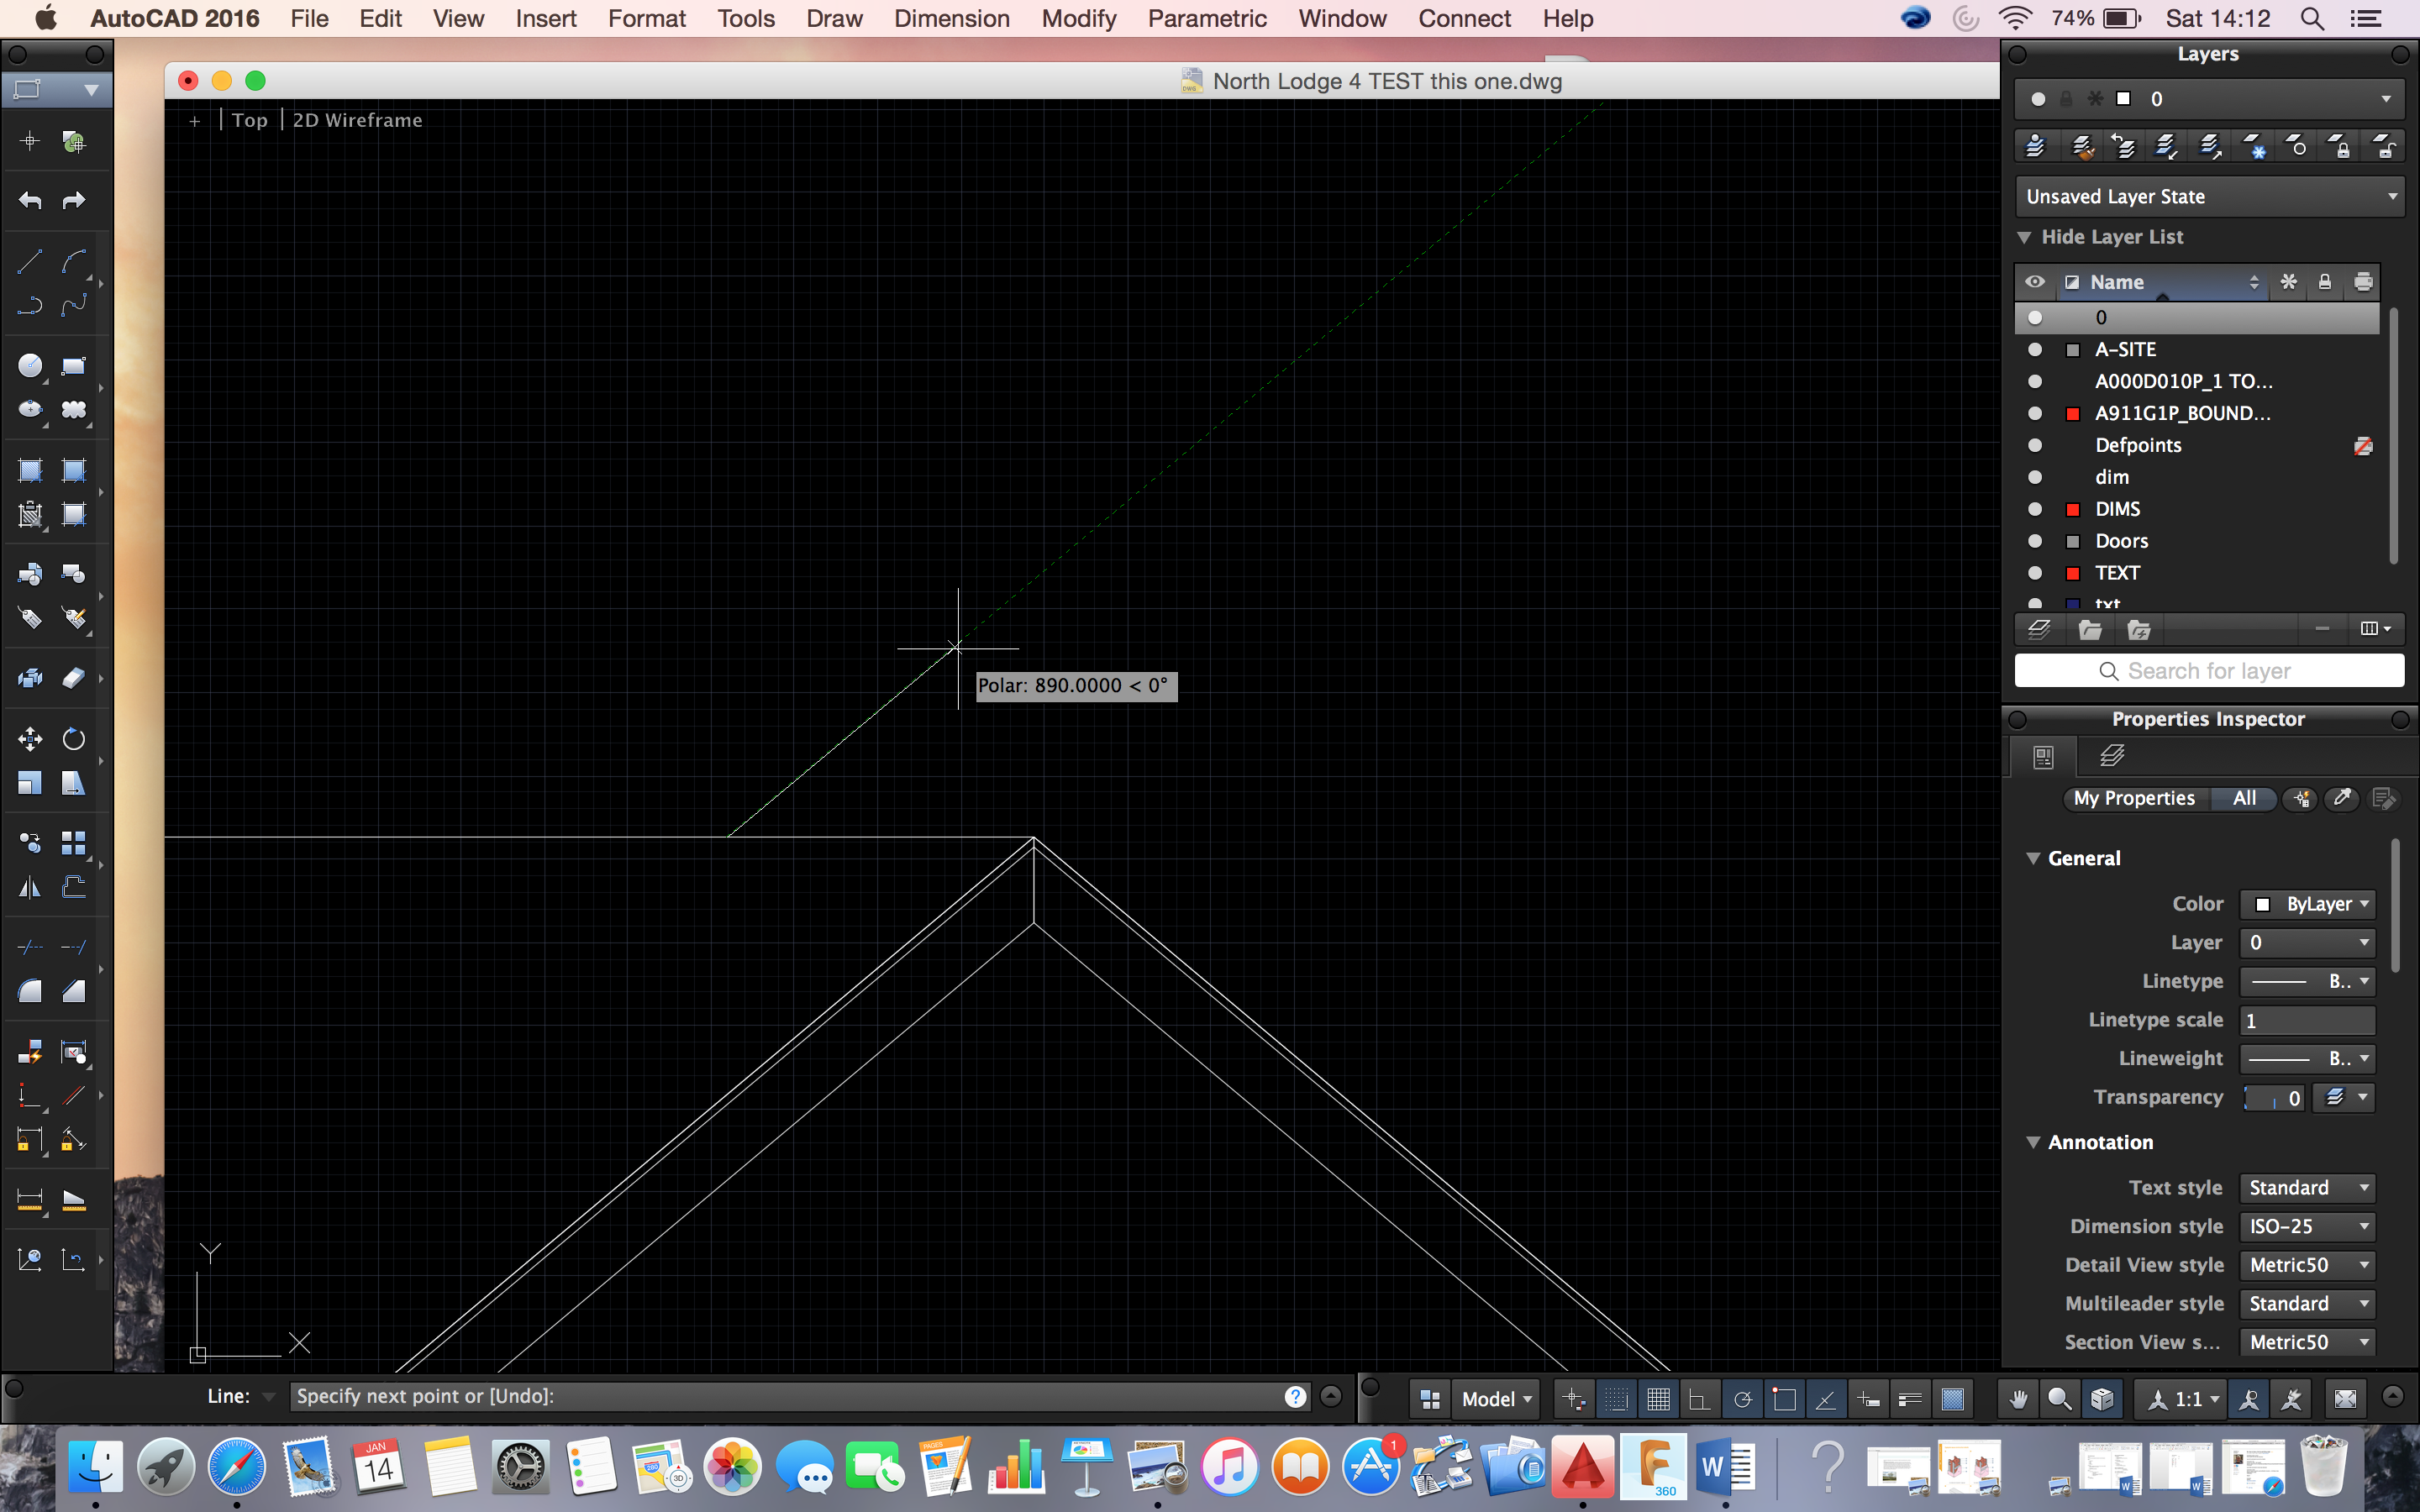 Solved: how to draw a line by specifying angle - Autodesk Community- AutoCAD  for Mac